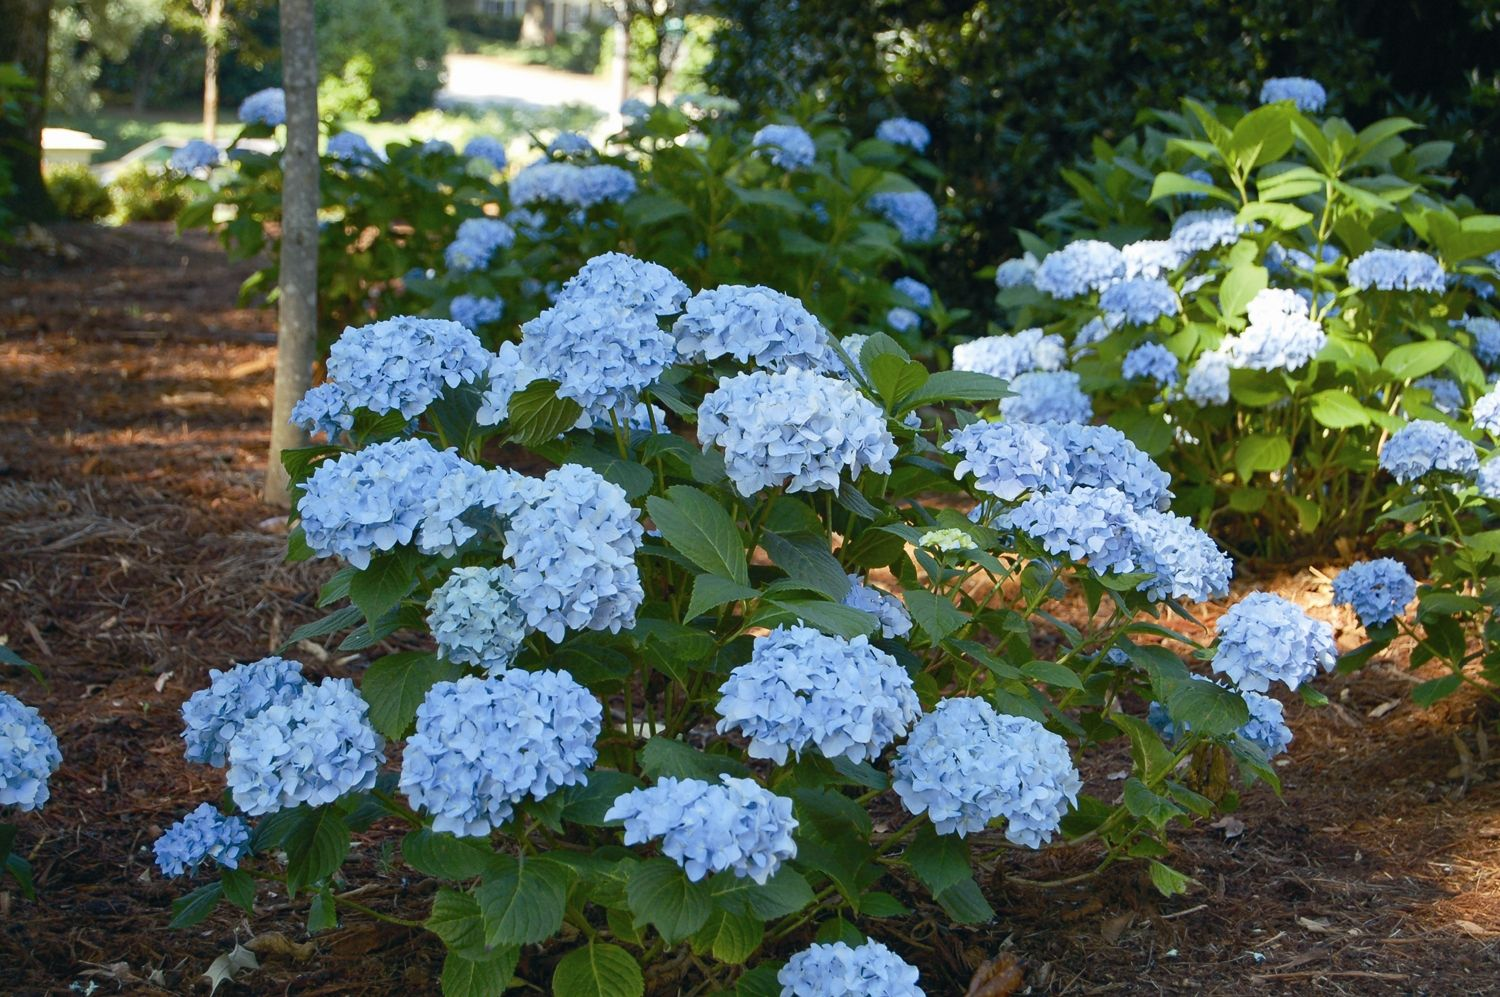 Magnificent Mini Penny Hydrangea Find It At A Home Depot Or Lowe S Near You Plants Hydrangea Hydrangea Care